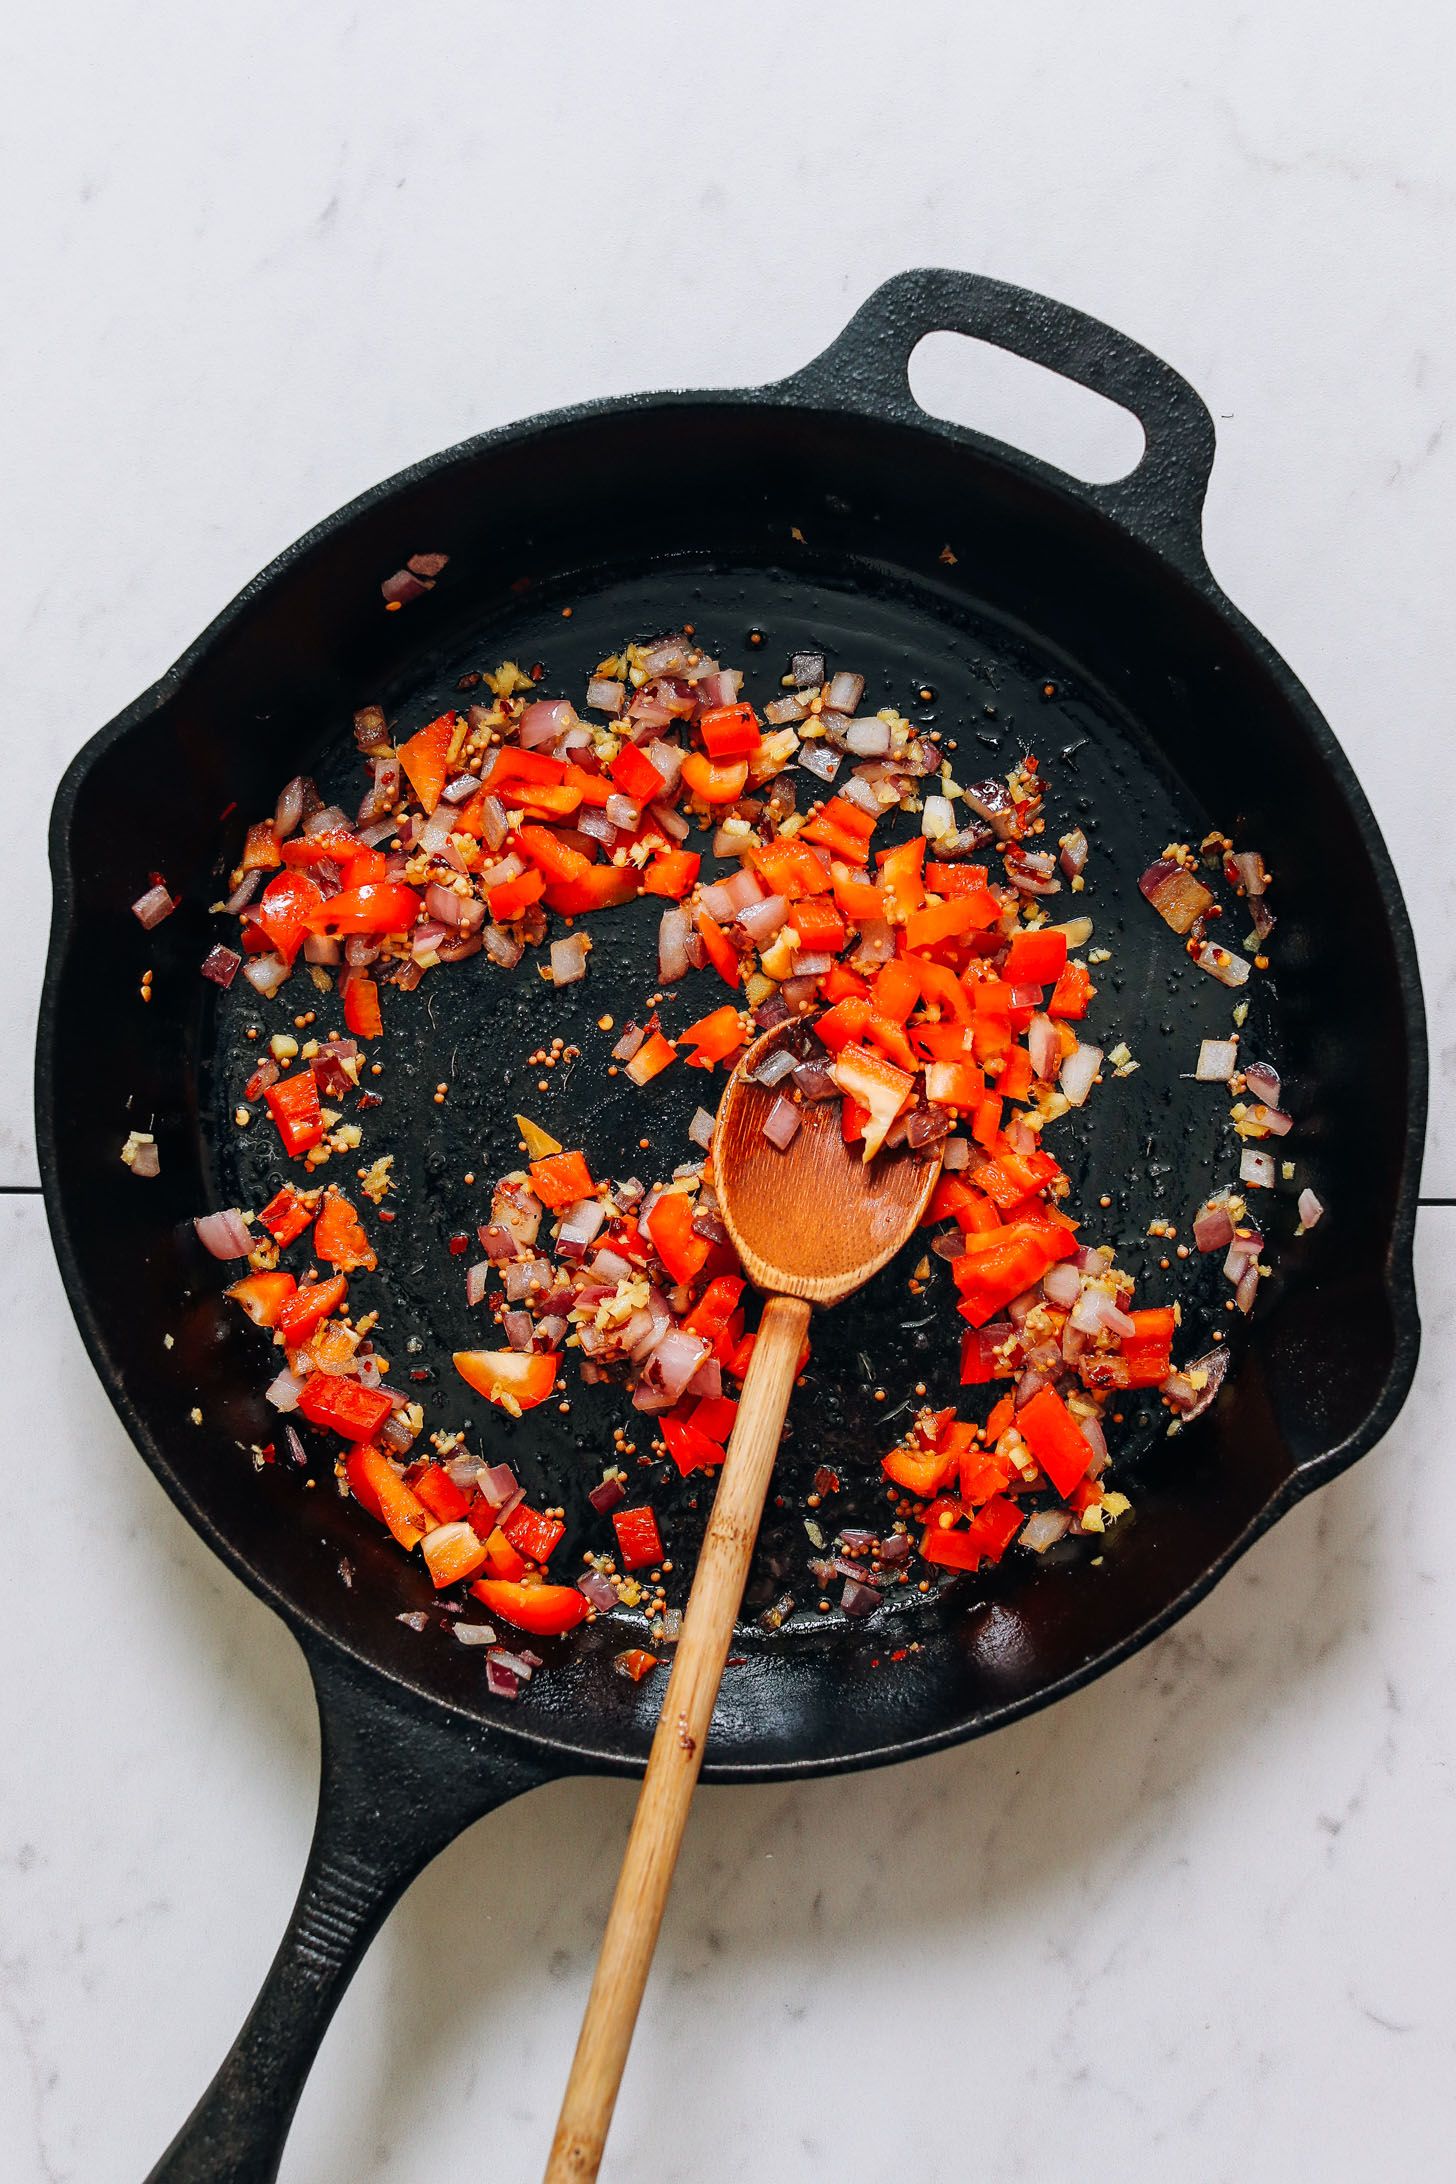 Sautéed onion, bell pepper, and spices in a cast iron skillet for making our Potato Aloo Sabzi recipe